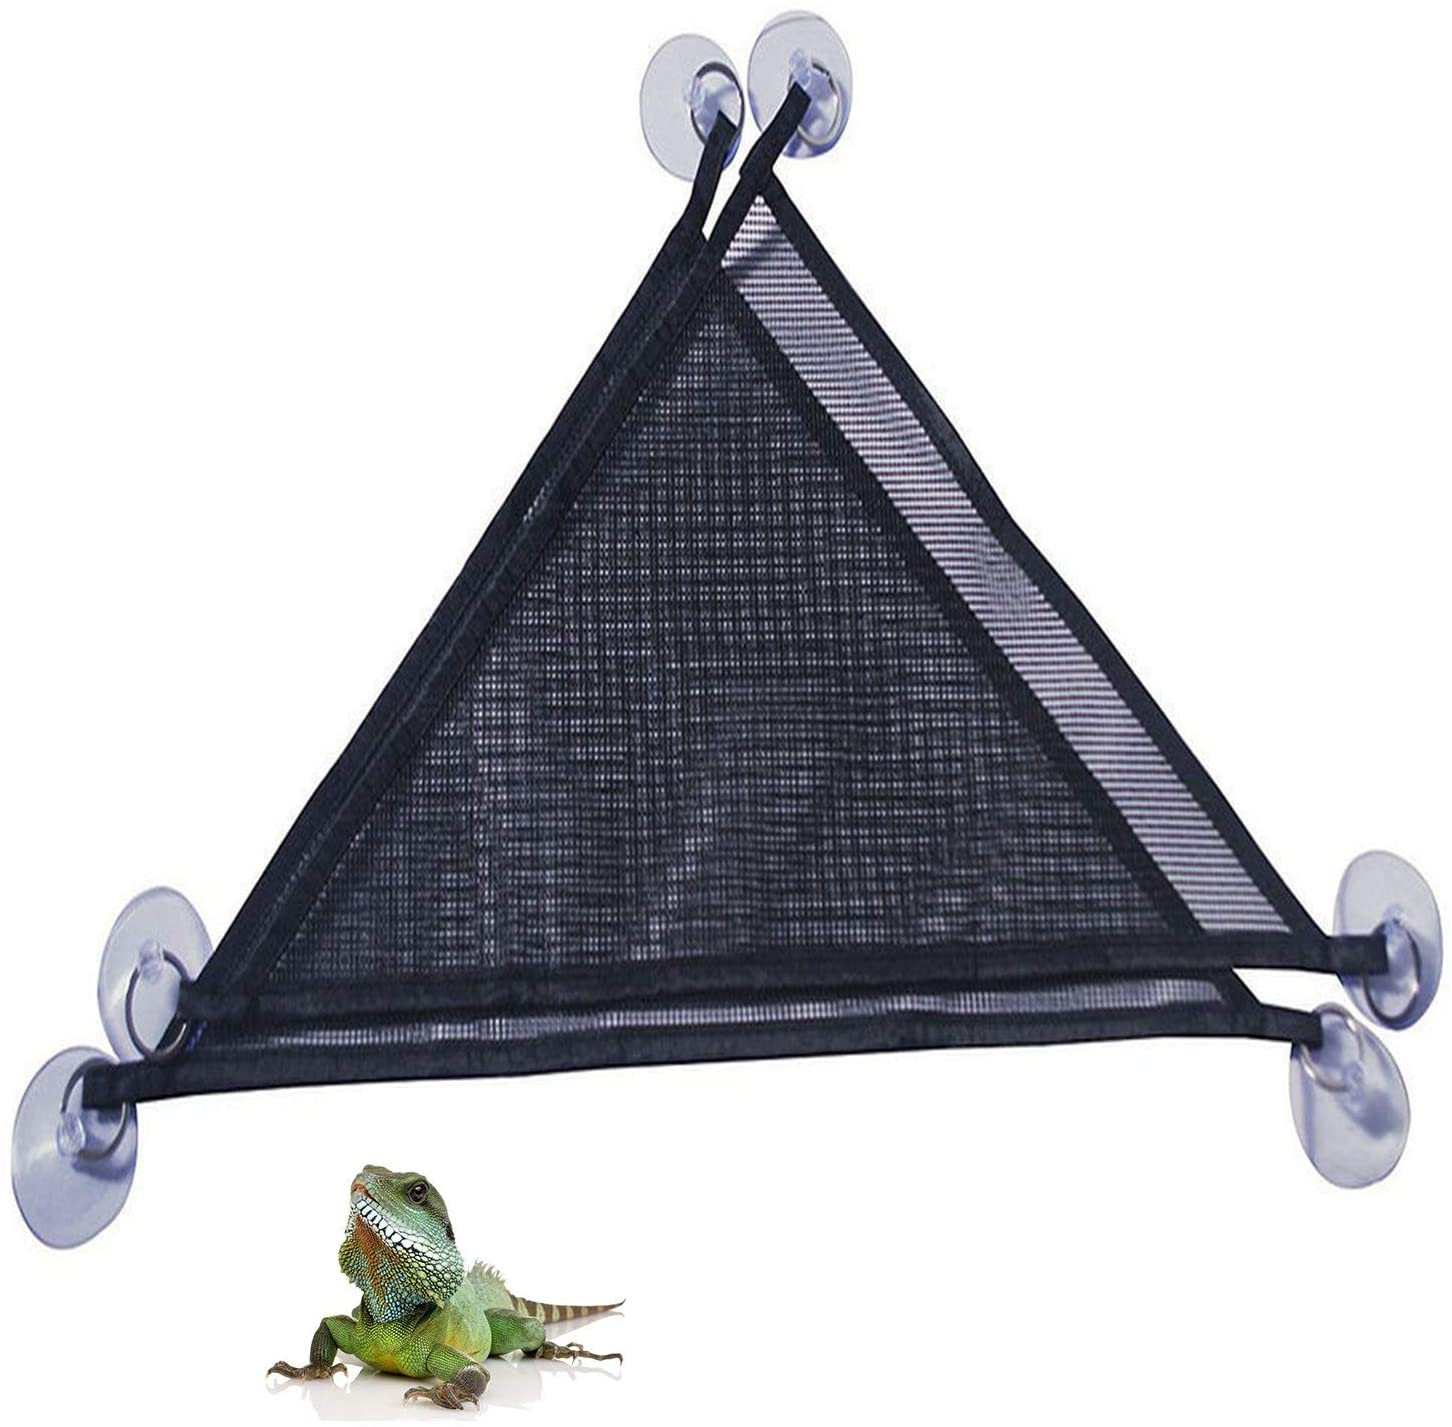 Oncpcare 2 Pack of Reptile Hammock Set, Breathable Mesh Lizard Hammock, Lounger & Ladder Accessories Set for Large & Small Bearded Dragons Anole Geckos Lizards or Snakes